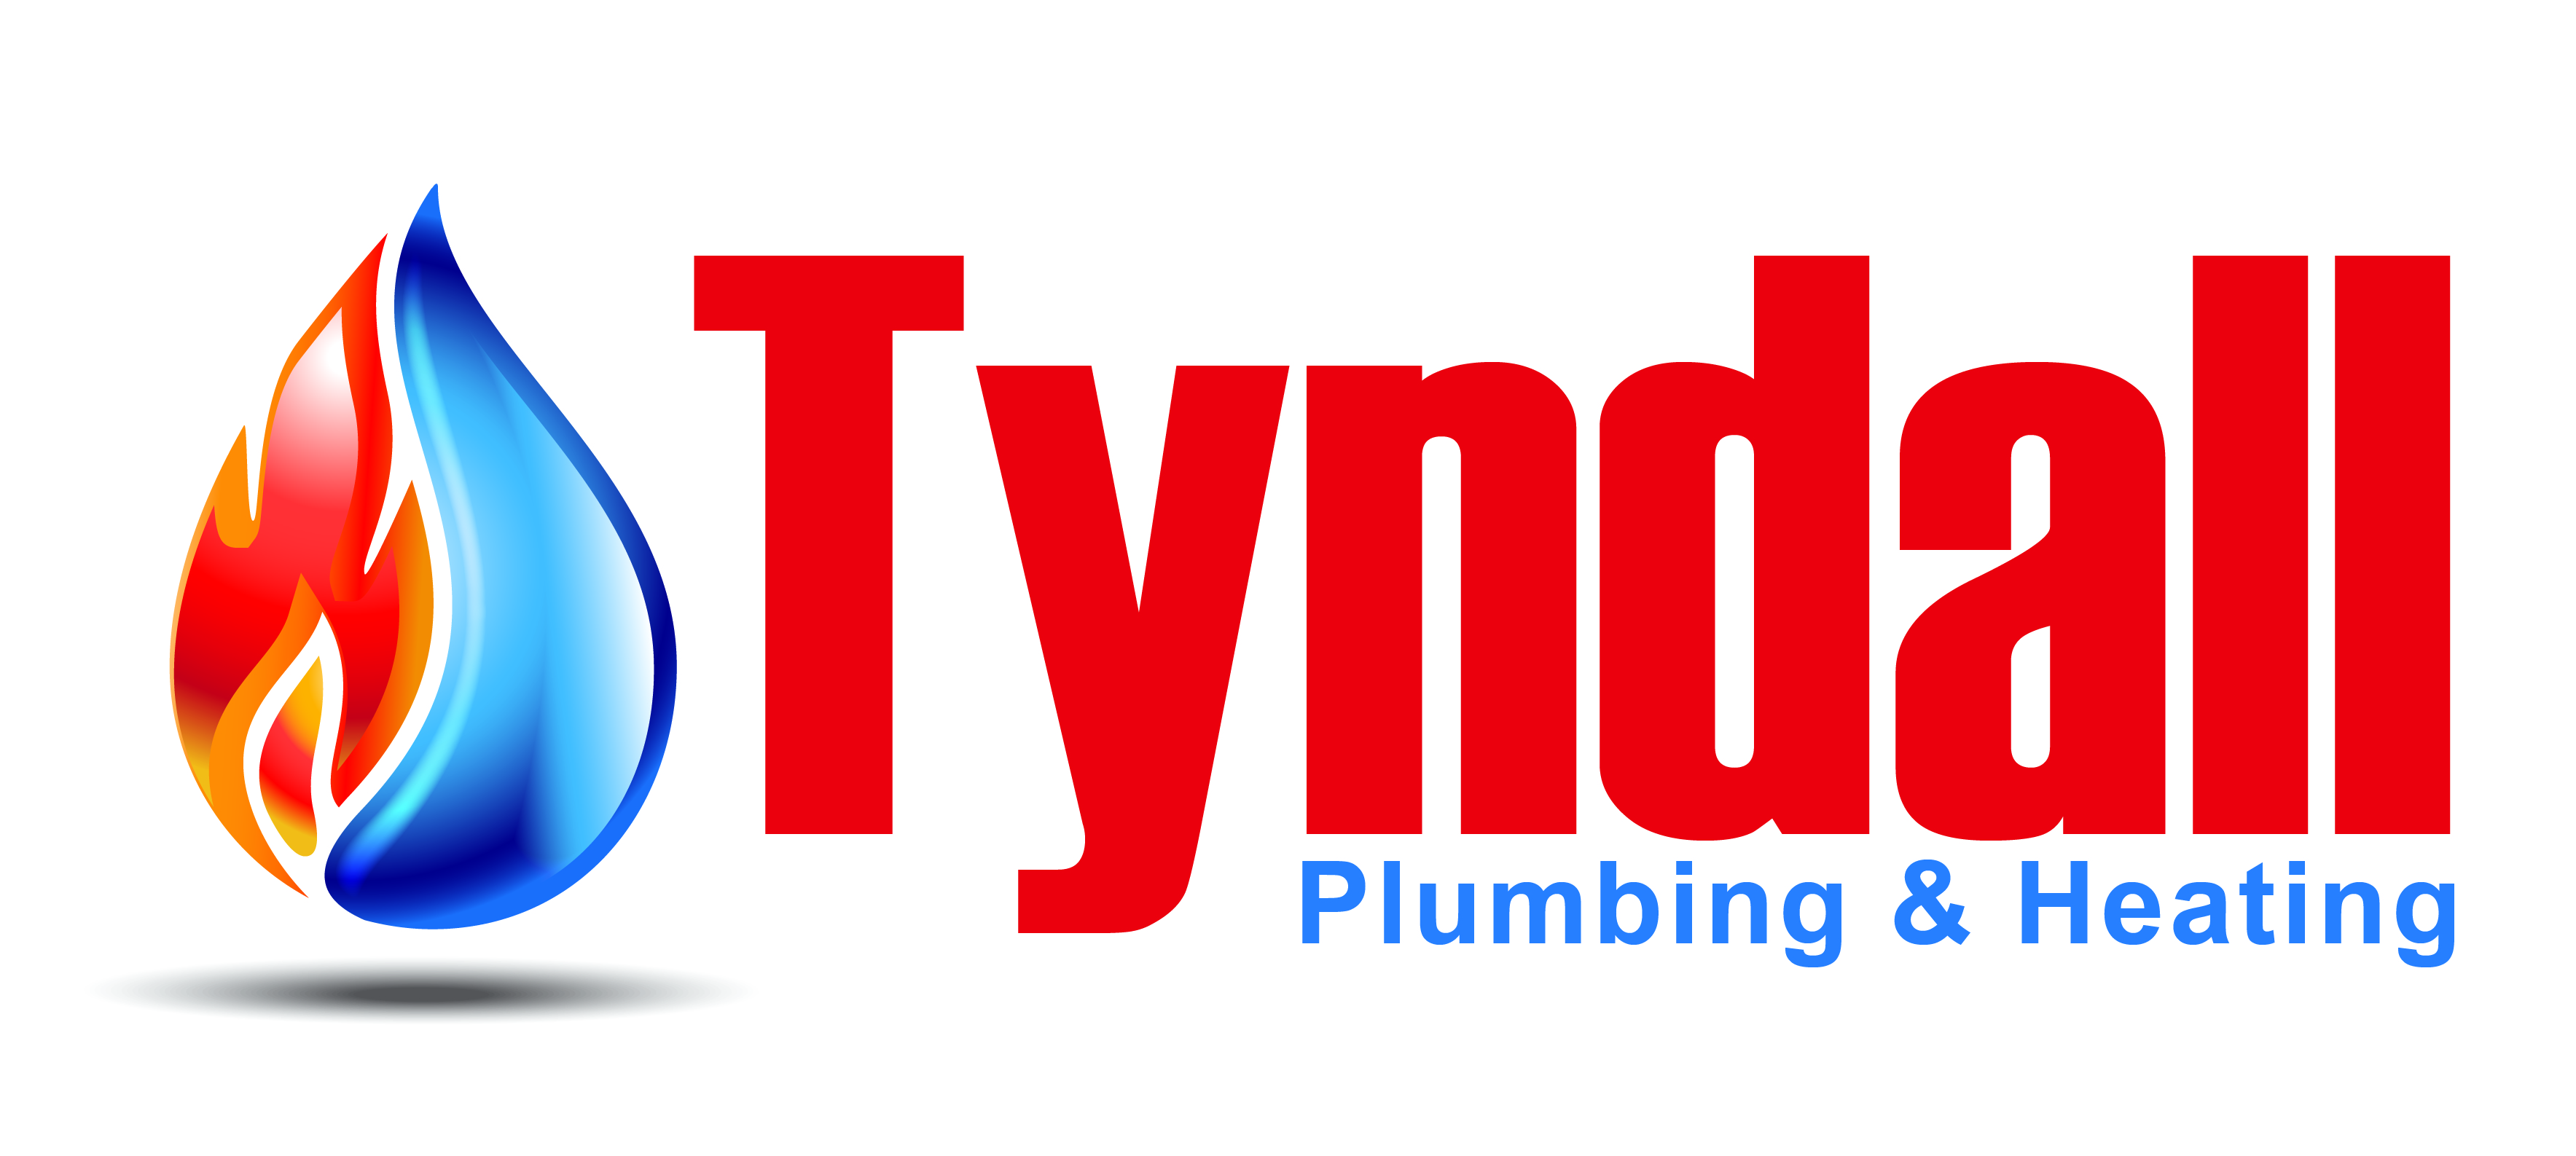 Logo Design by Rob King - Entry No. 73 in the Logo Design Contest Imaginative Logo Design for Tyndall Plumbing & Heating.